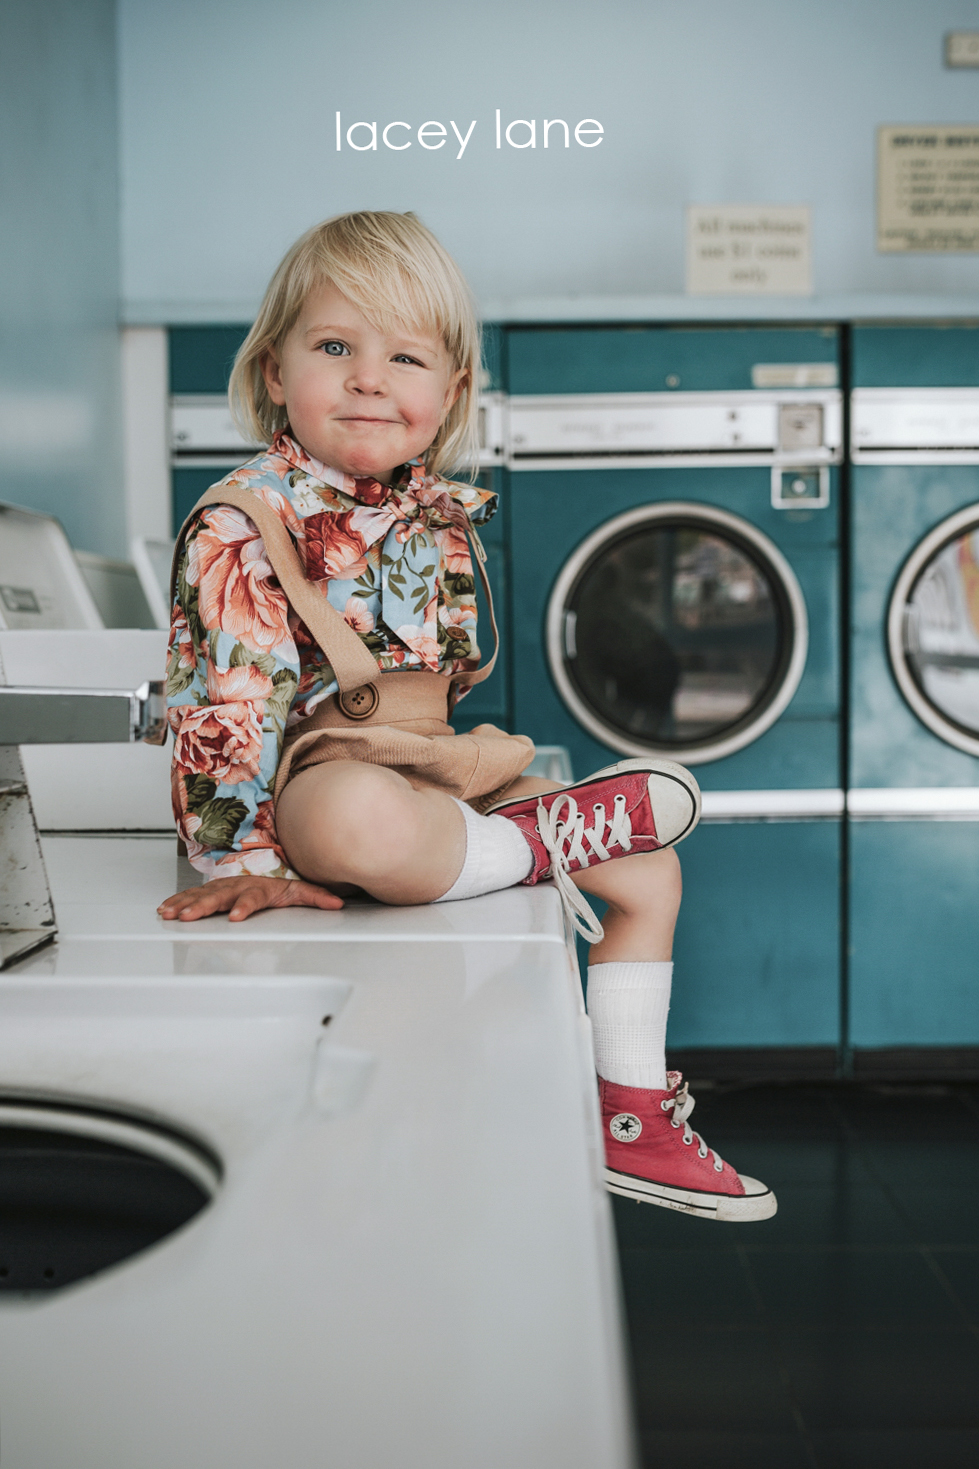 Blonde girl sits on washing machine in laundromat with cute outf